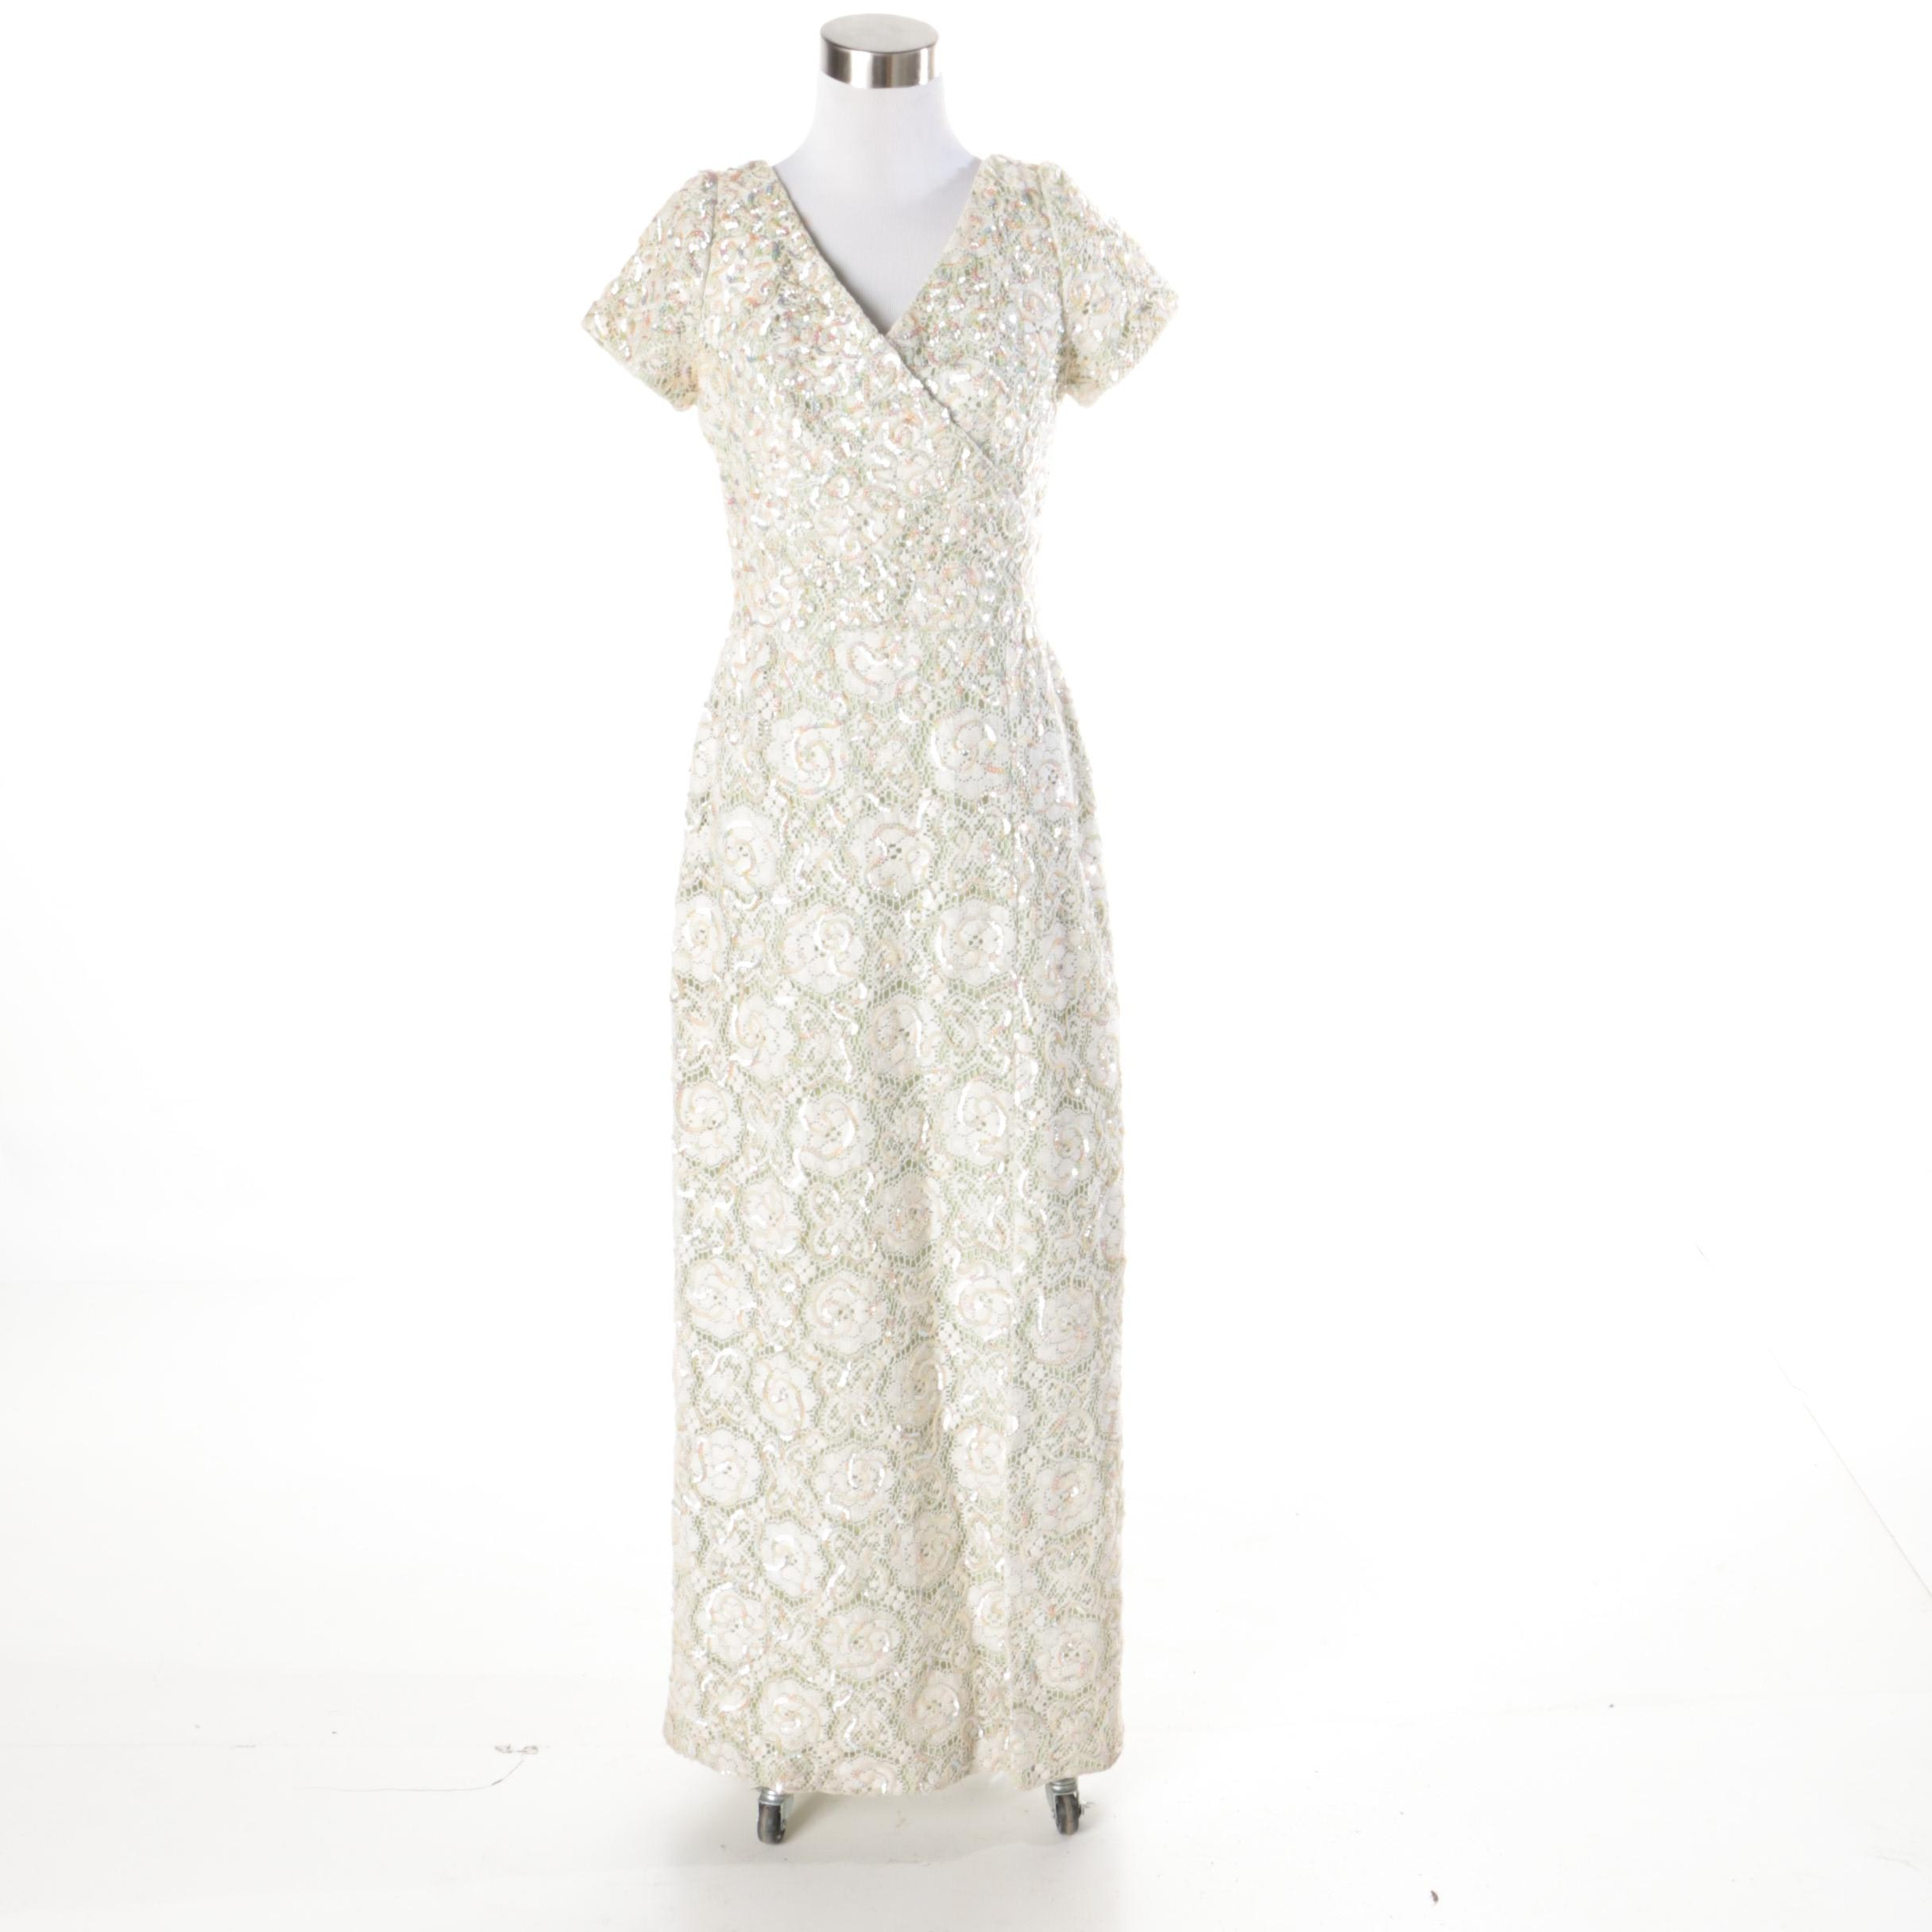 1960s Vintage Emma Domb Evening Dress